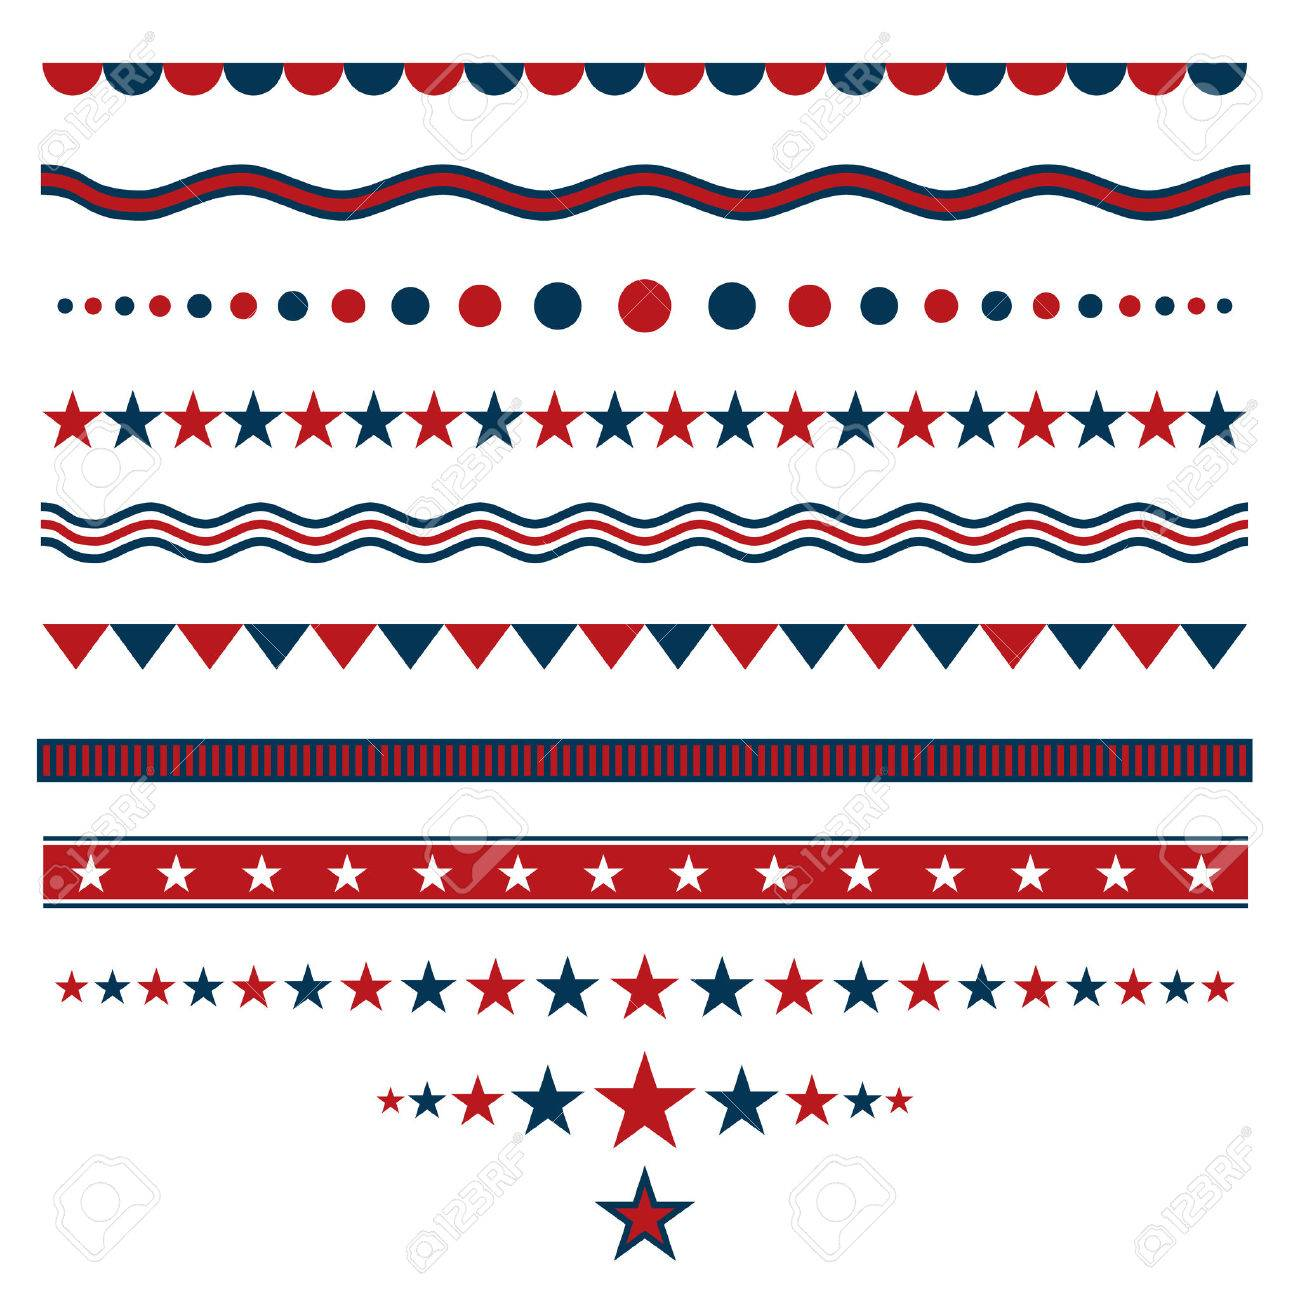 Red and blue dividers for patriotic designs - 50321850